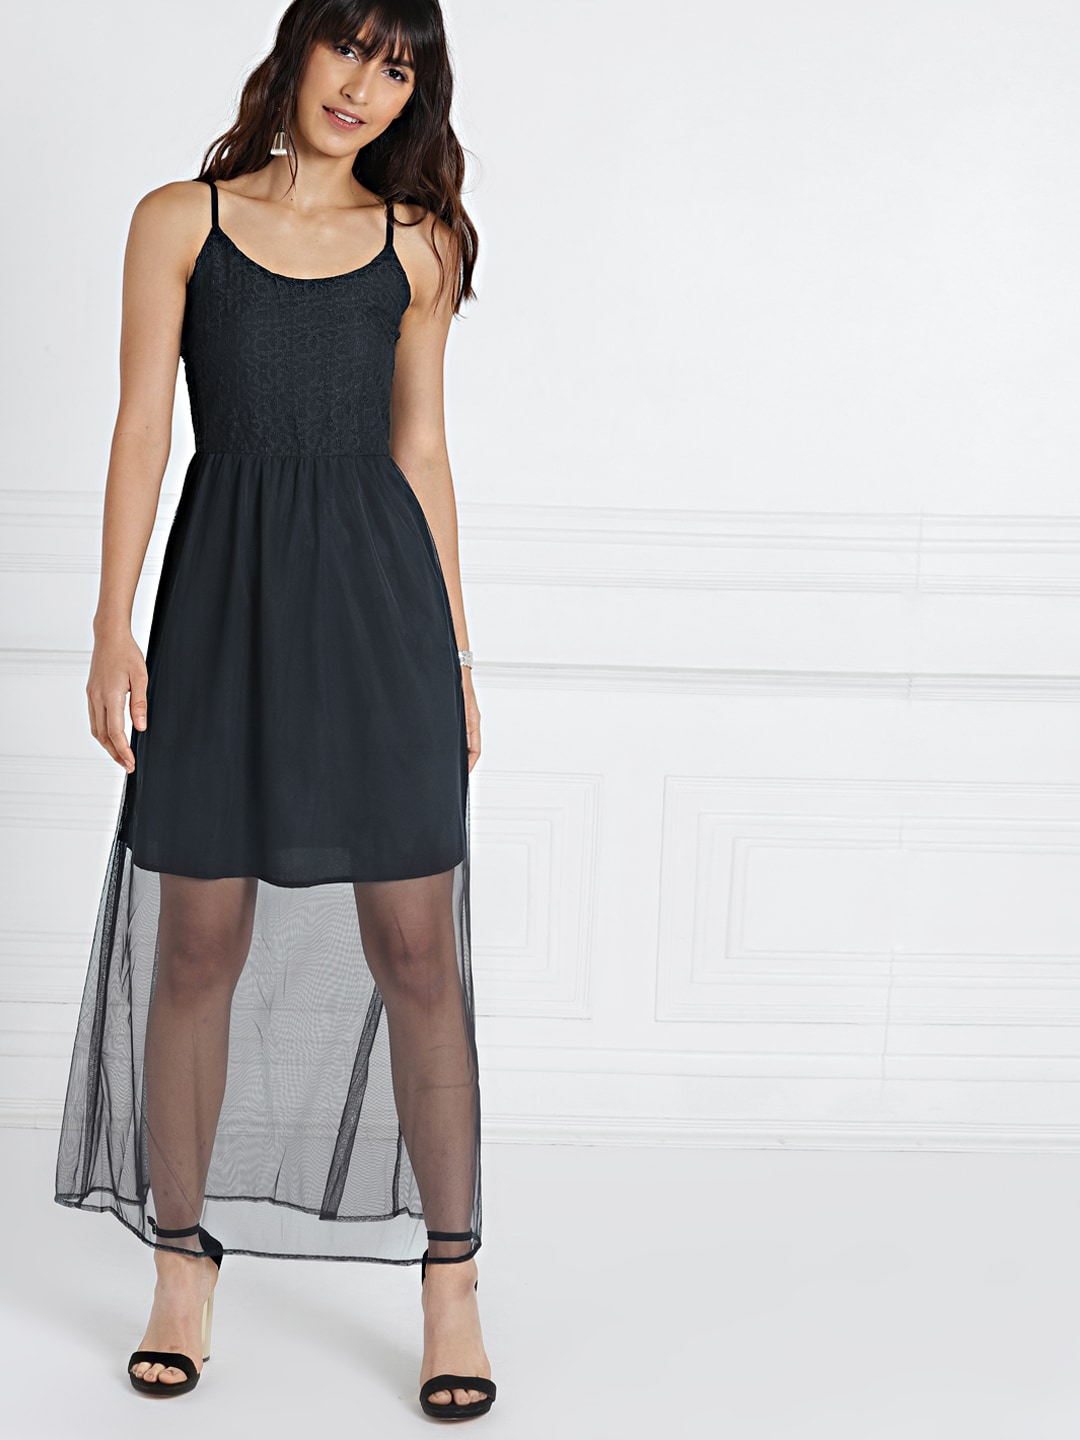 Gowns - Buy Gown for Girls & Women Online in India | Myntra